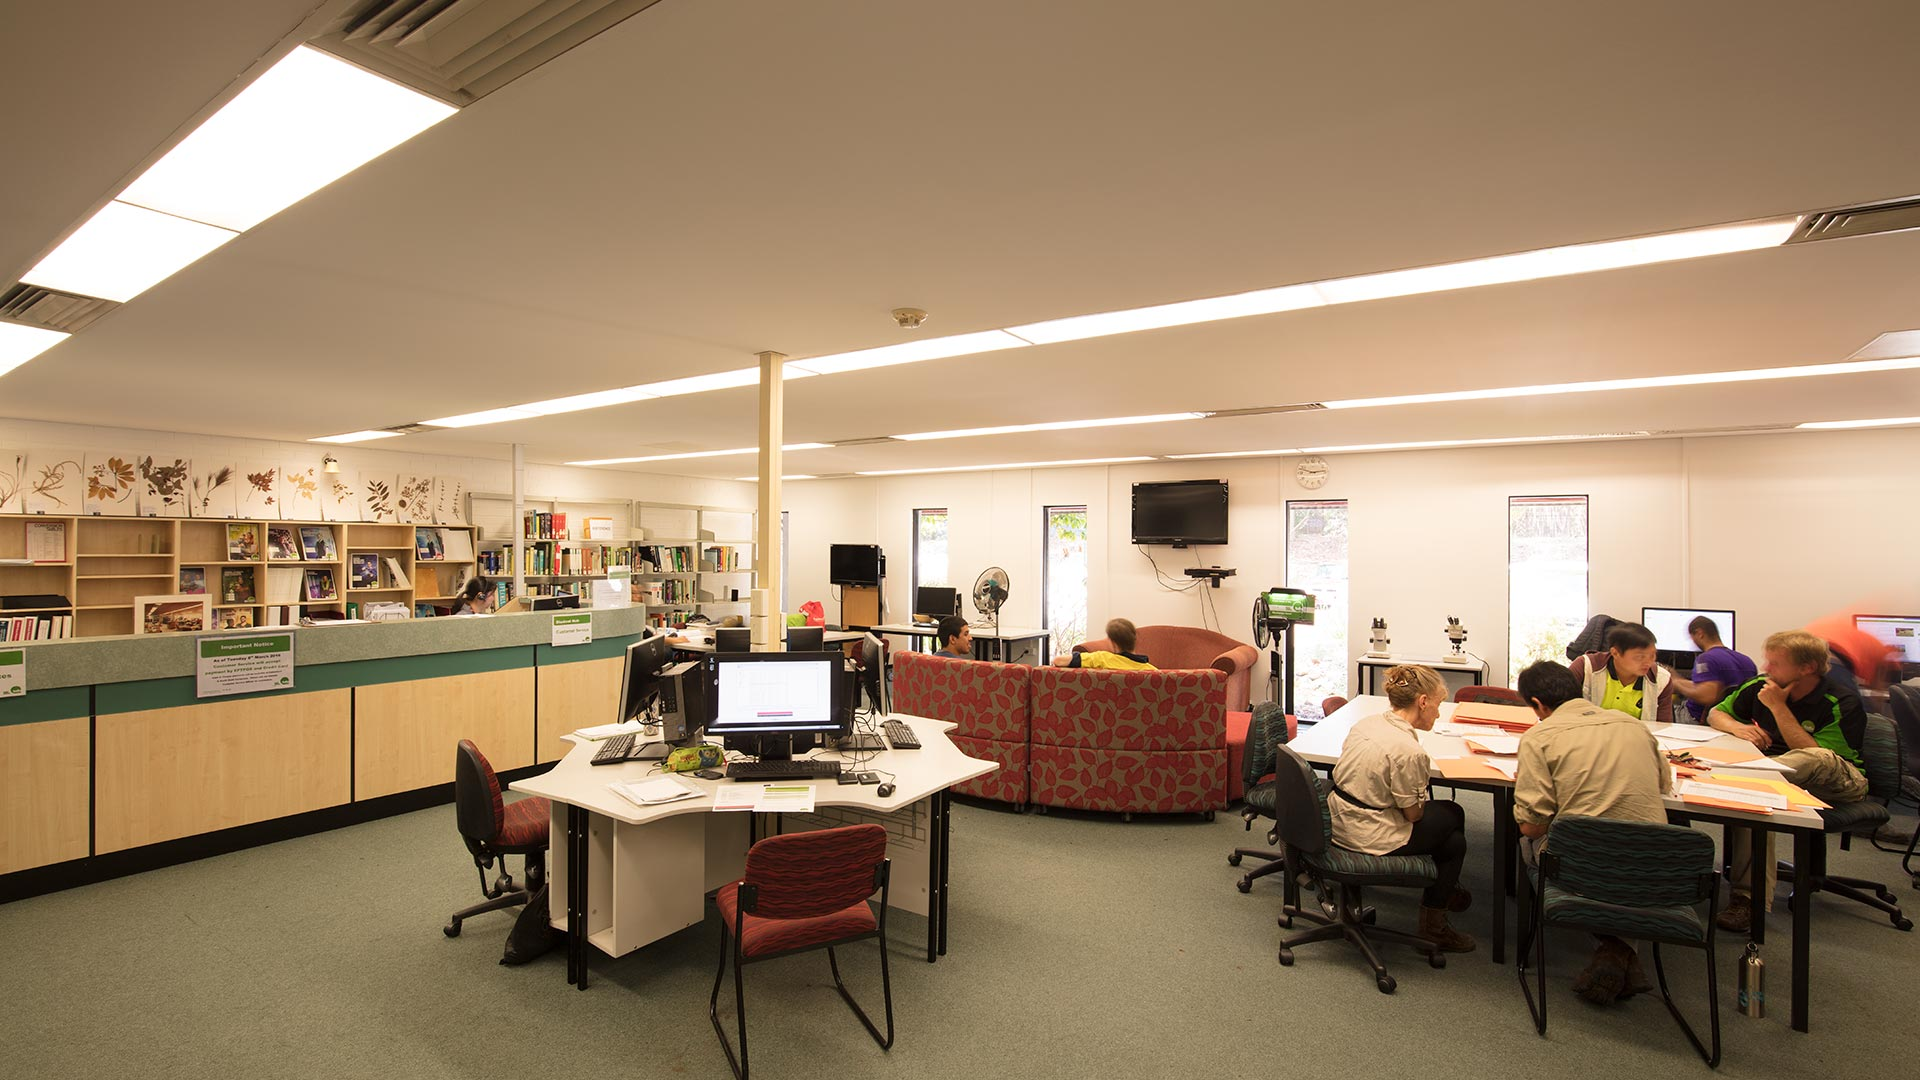 grovely-facilities-libraries-01.jpg